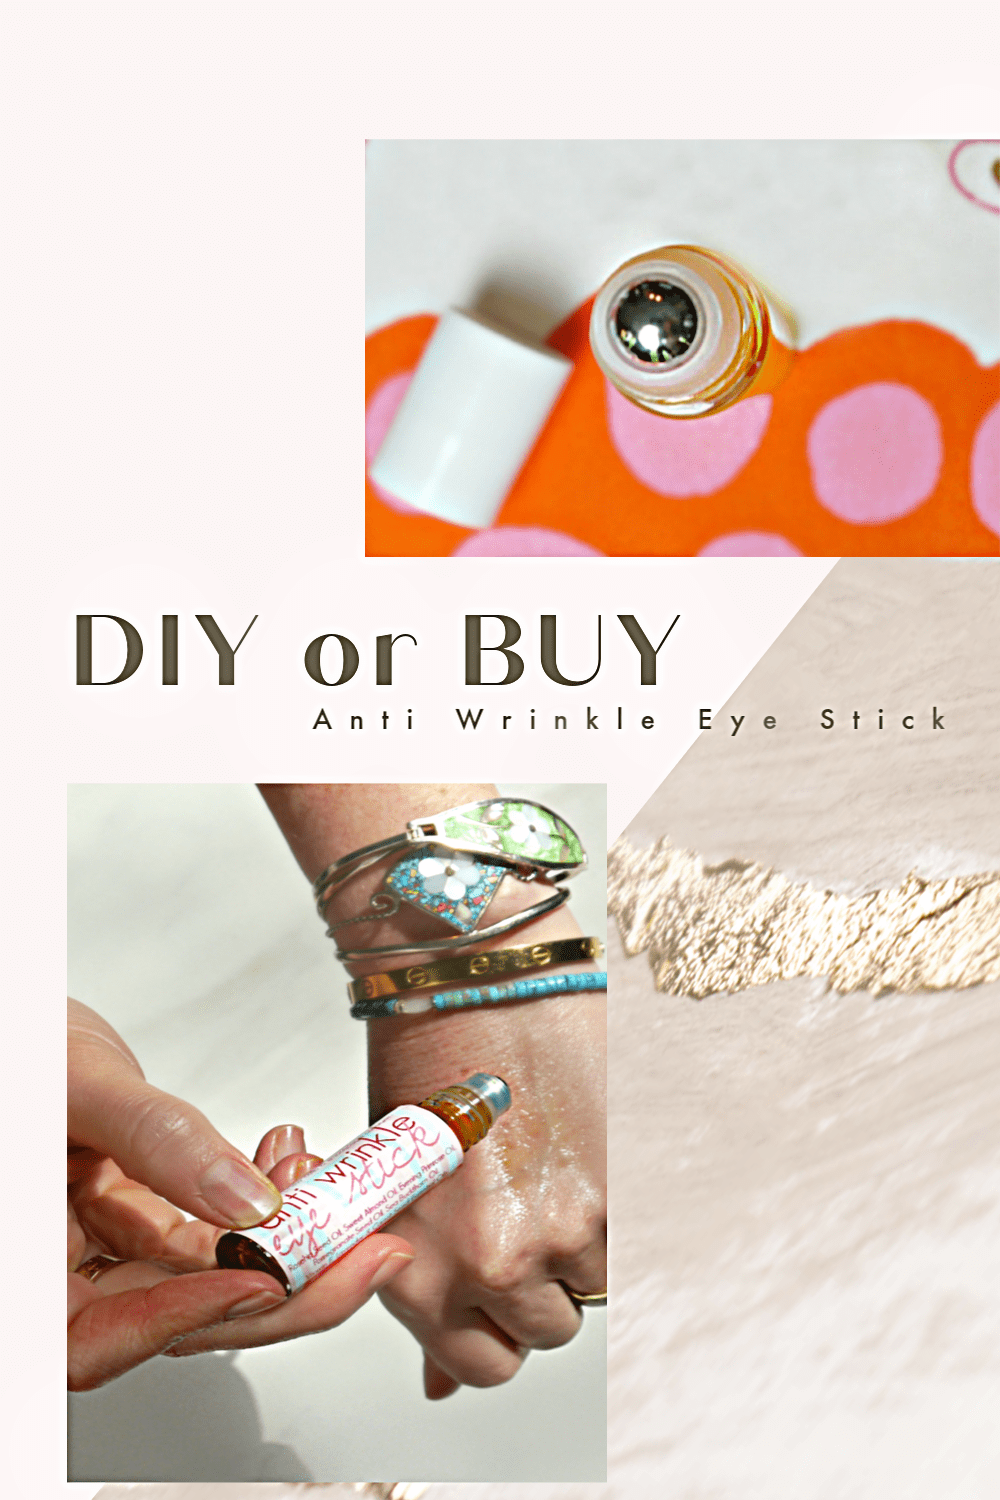 Anti Wrinkle Eye Stick DIY or BUY